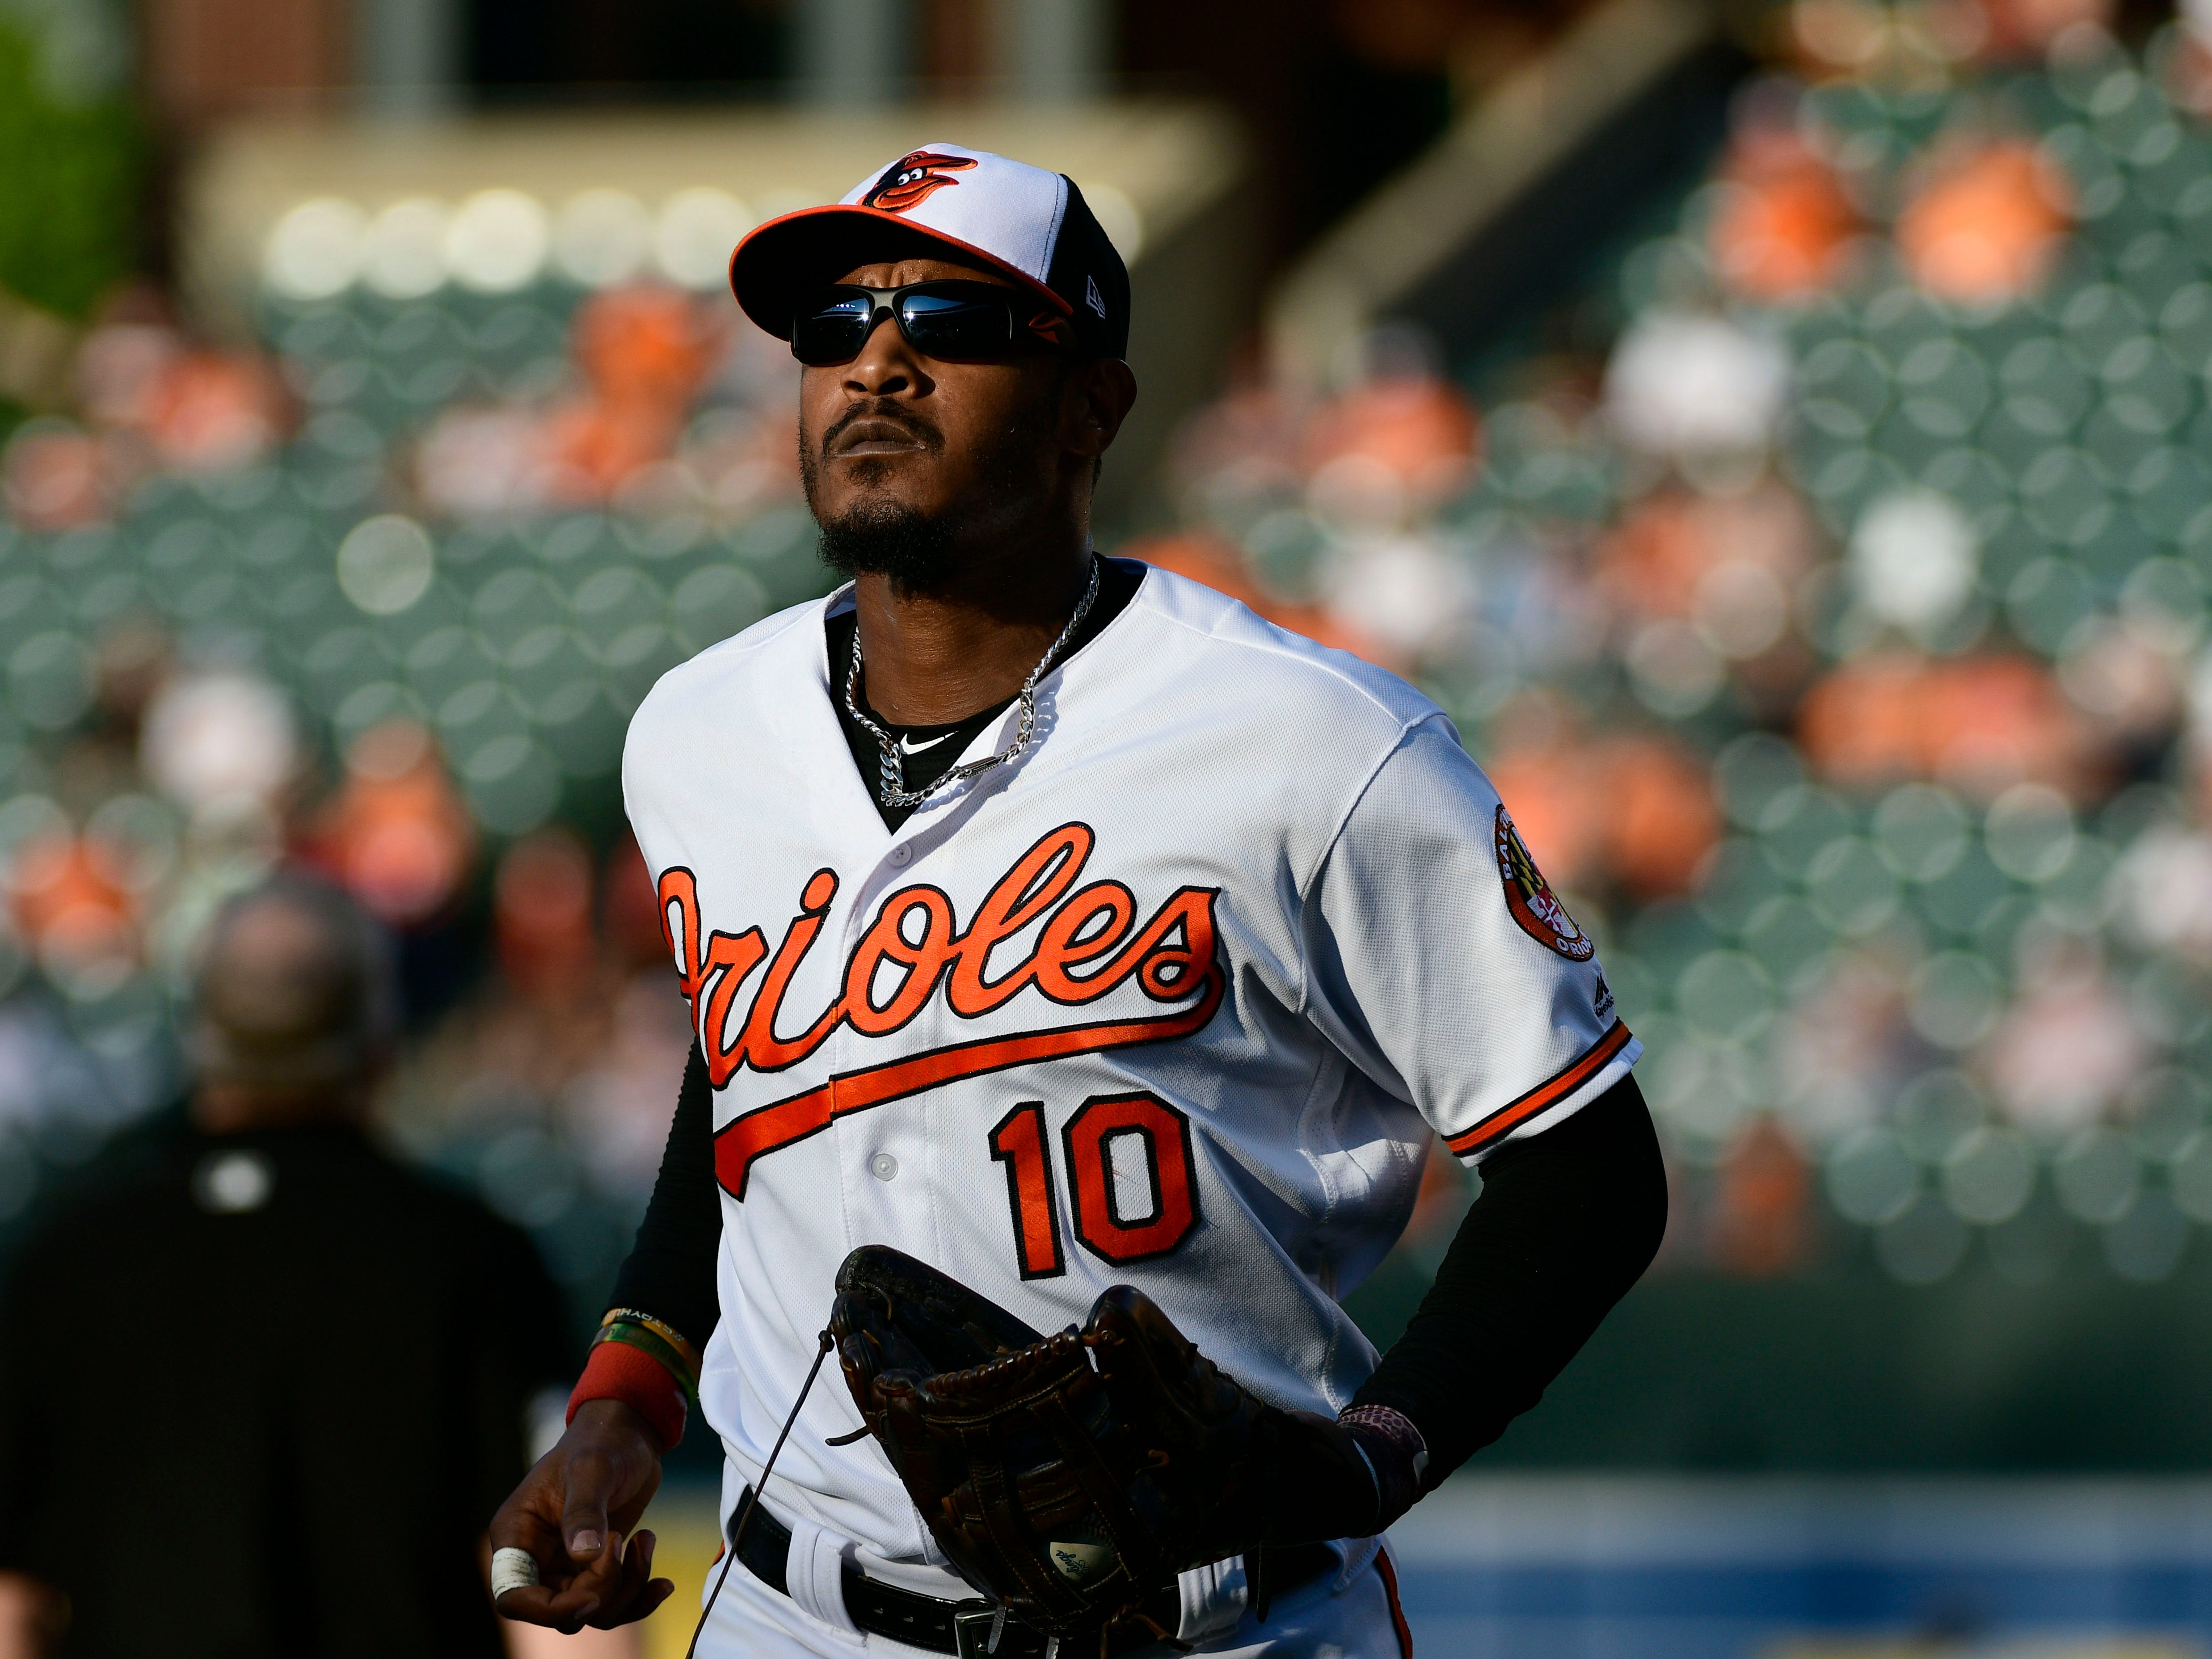 Adam Jones (33, OF, Orioles)